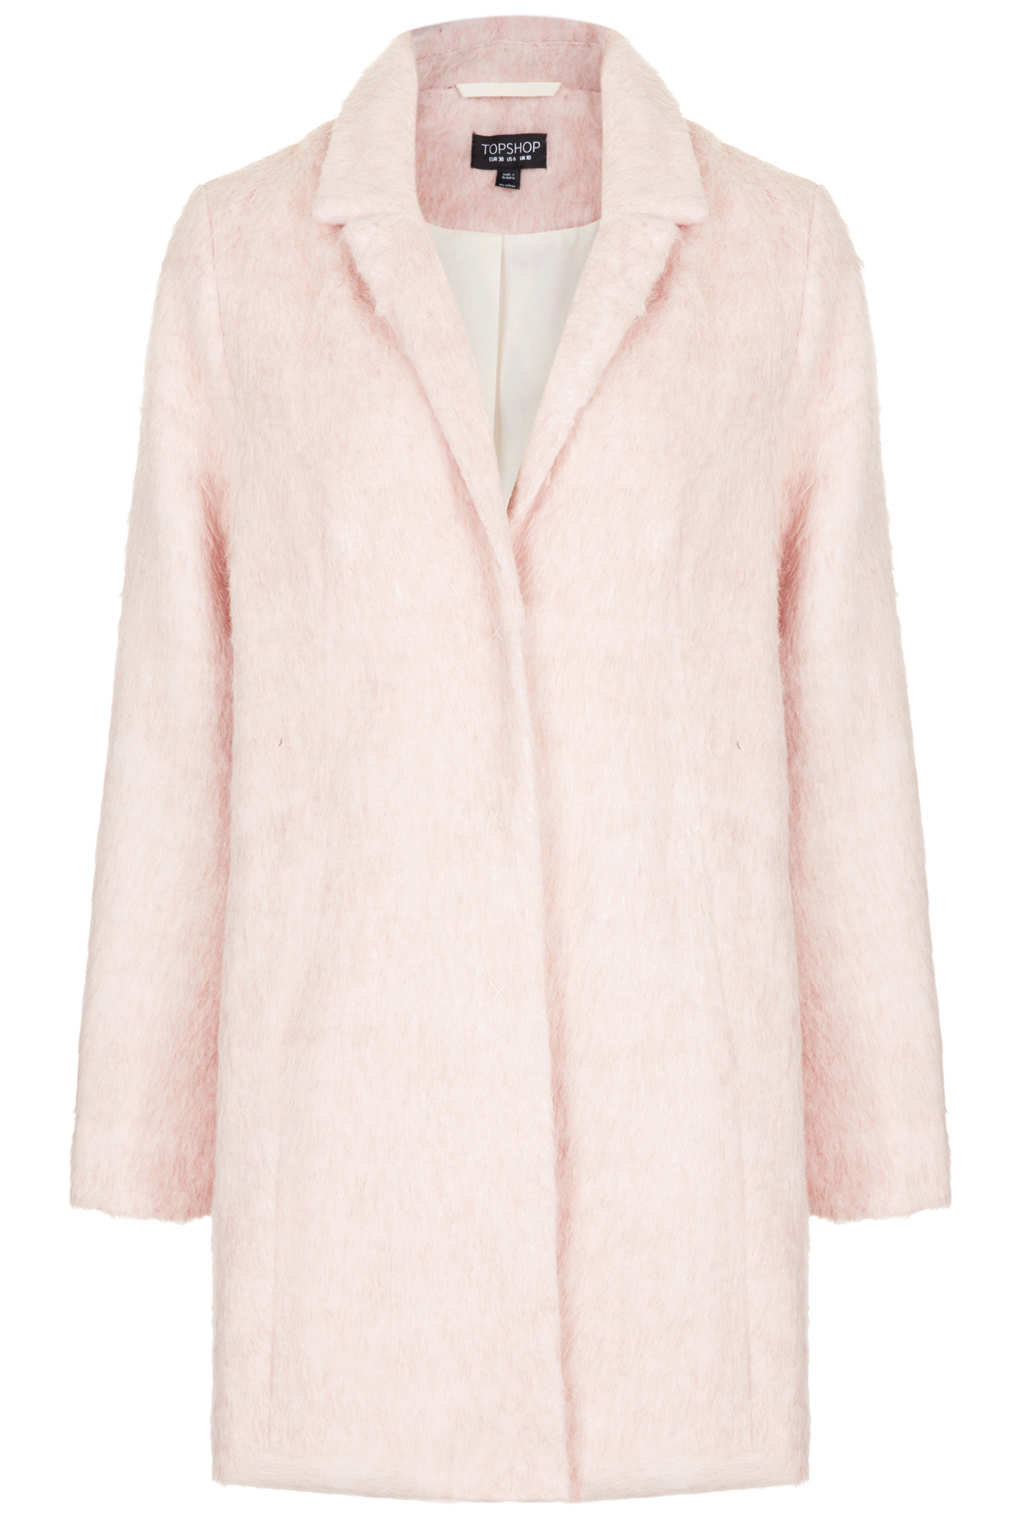 Topshop Pink Fluffy Coat - Coat Nj